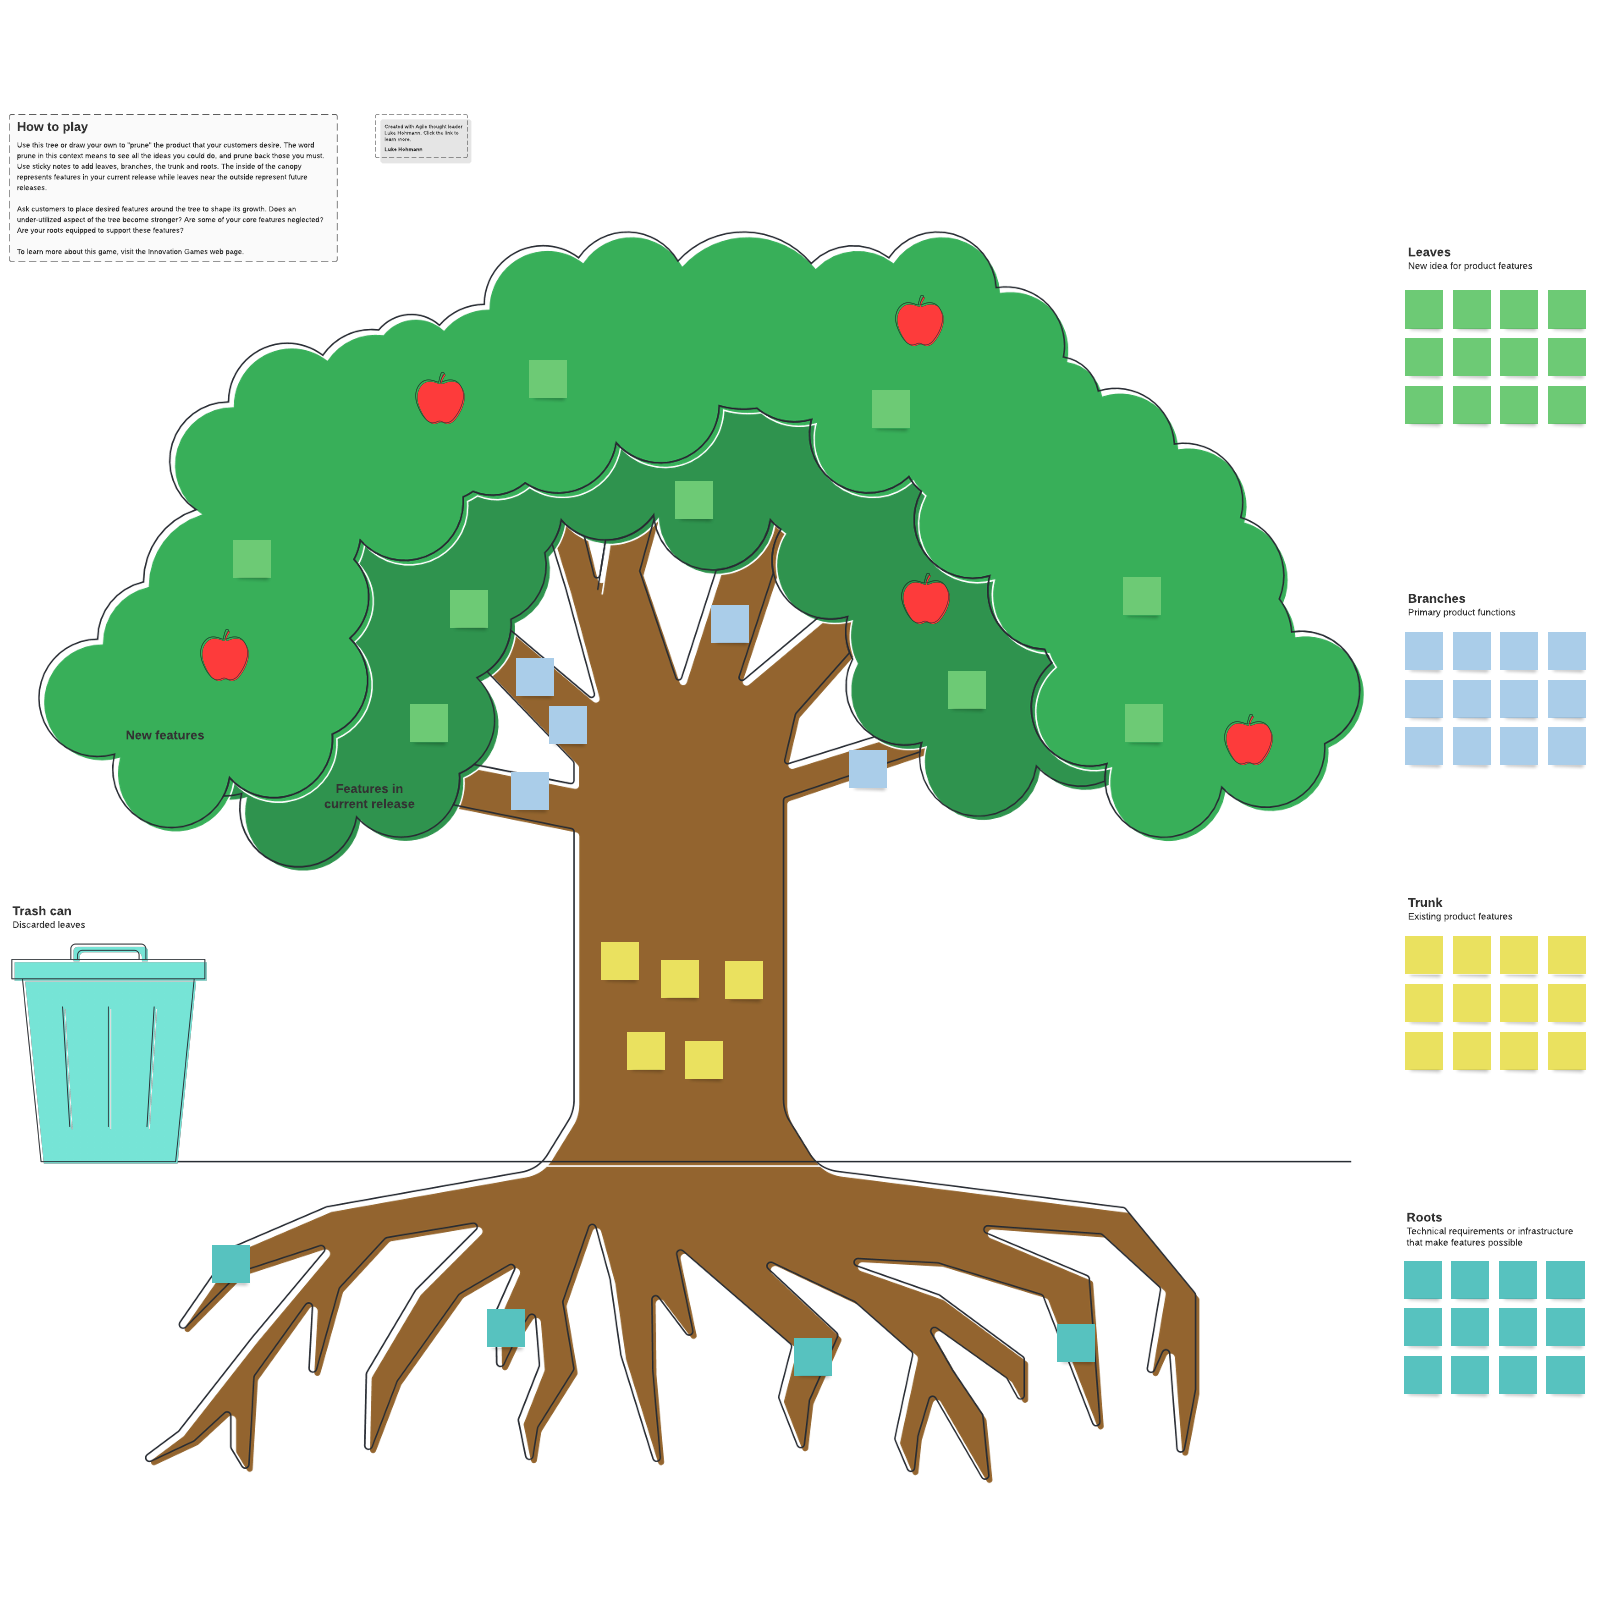 Prune the product tree